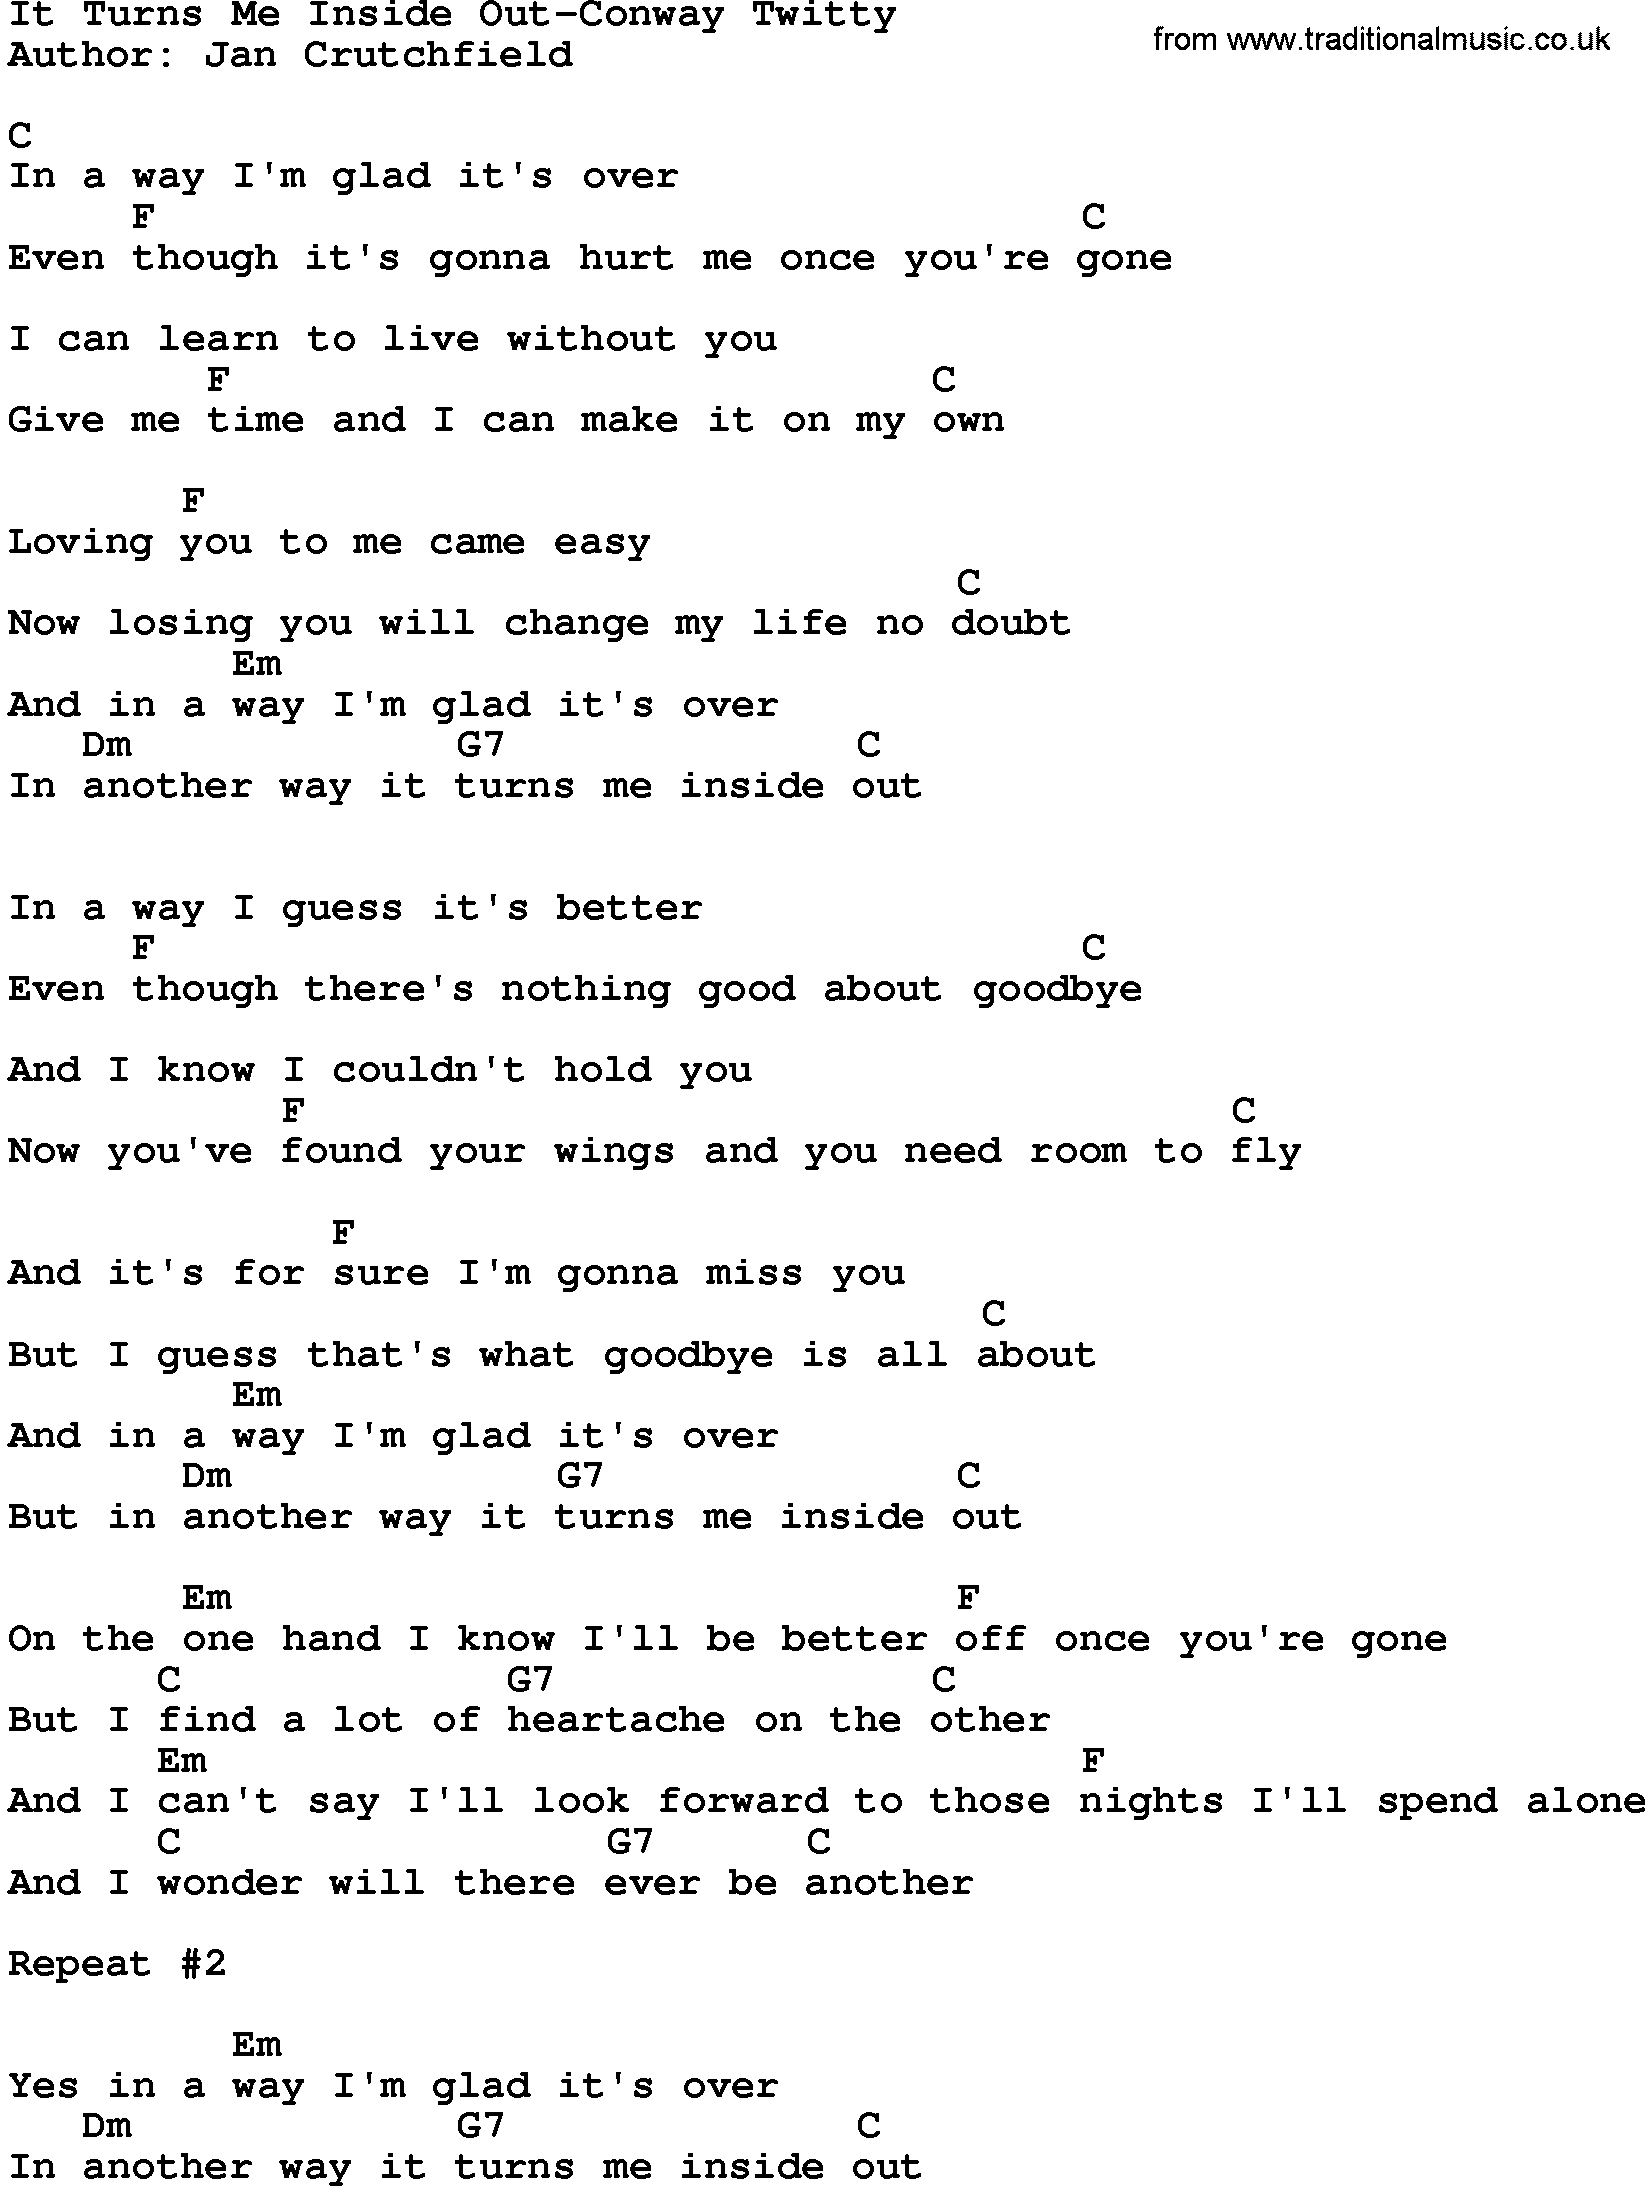 From The Inside Out Chords Country Musicit Turns Me Inside Out Conway Twitty Lyrics And Chords